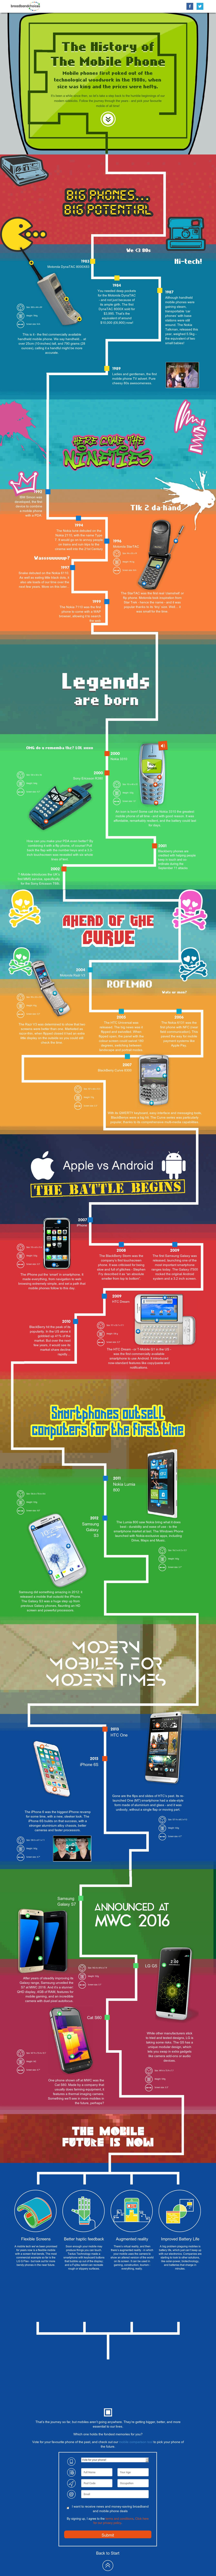 infographic - First Cell Phone